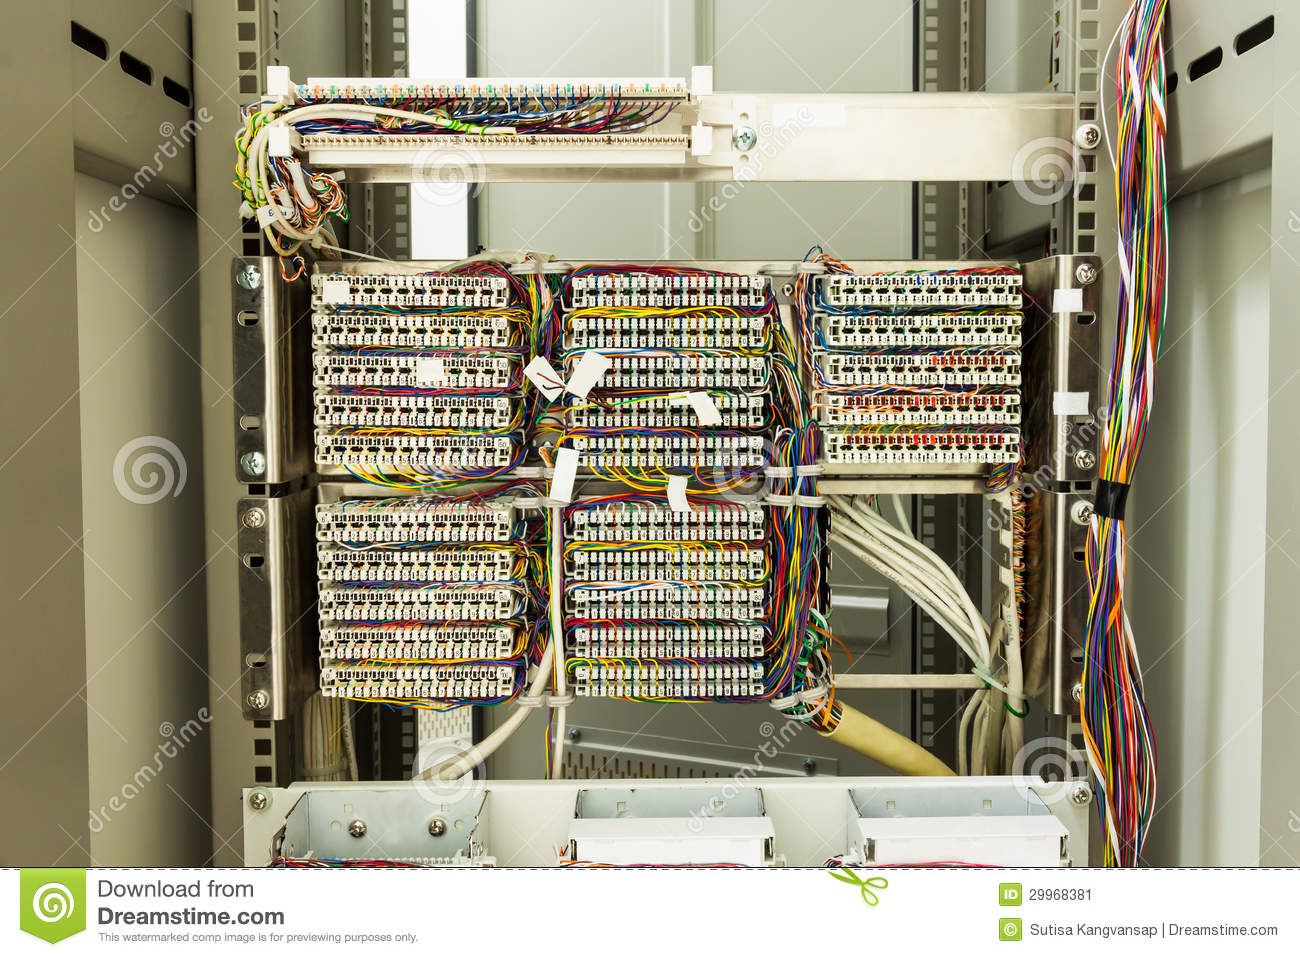 Astounding Rear Of Server Rack Stock Image Image Of Center Commercial 29968381 Wiring Digital Resources Funapmognl